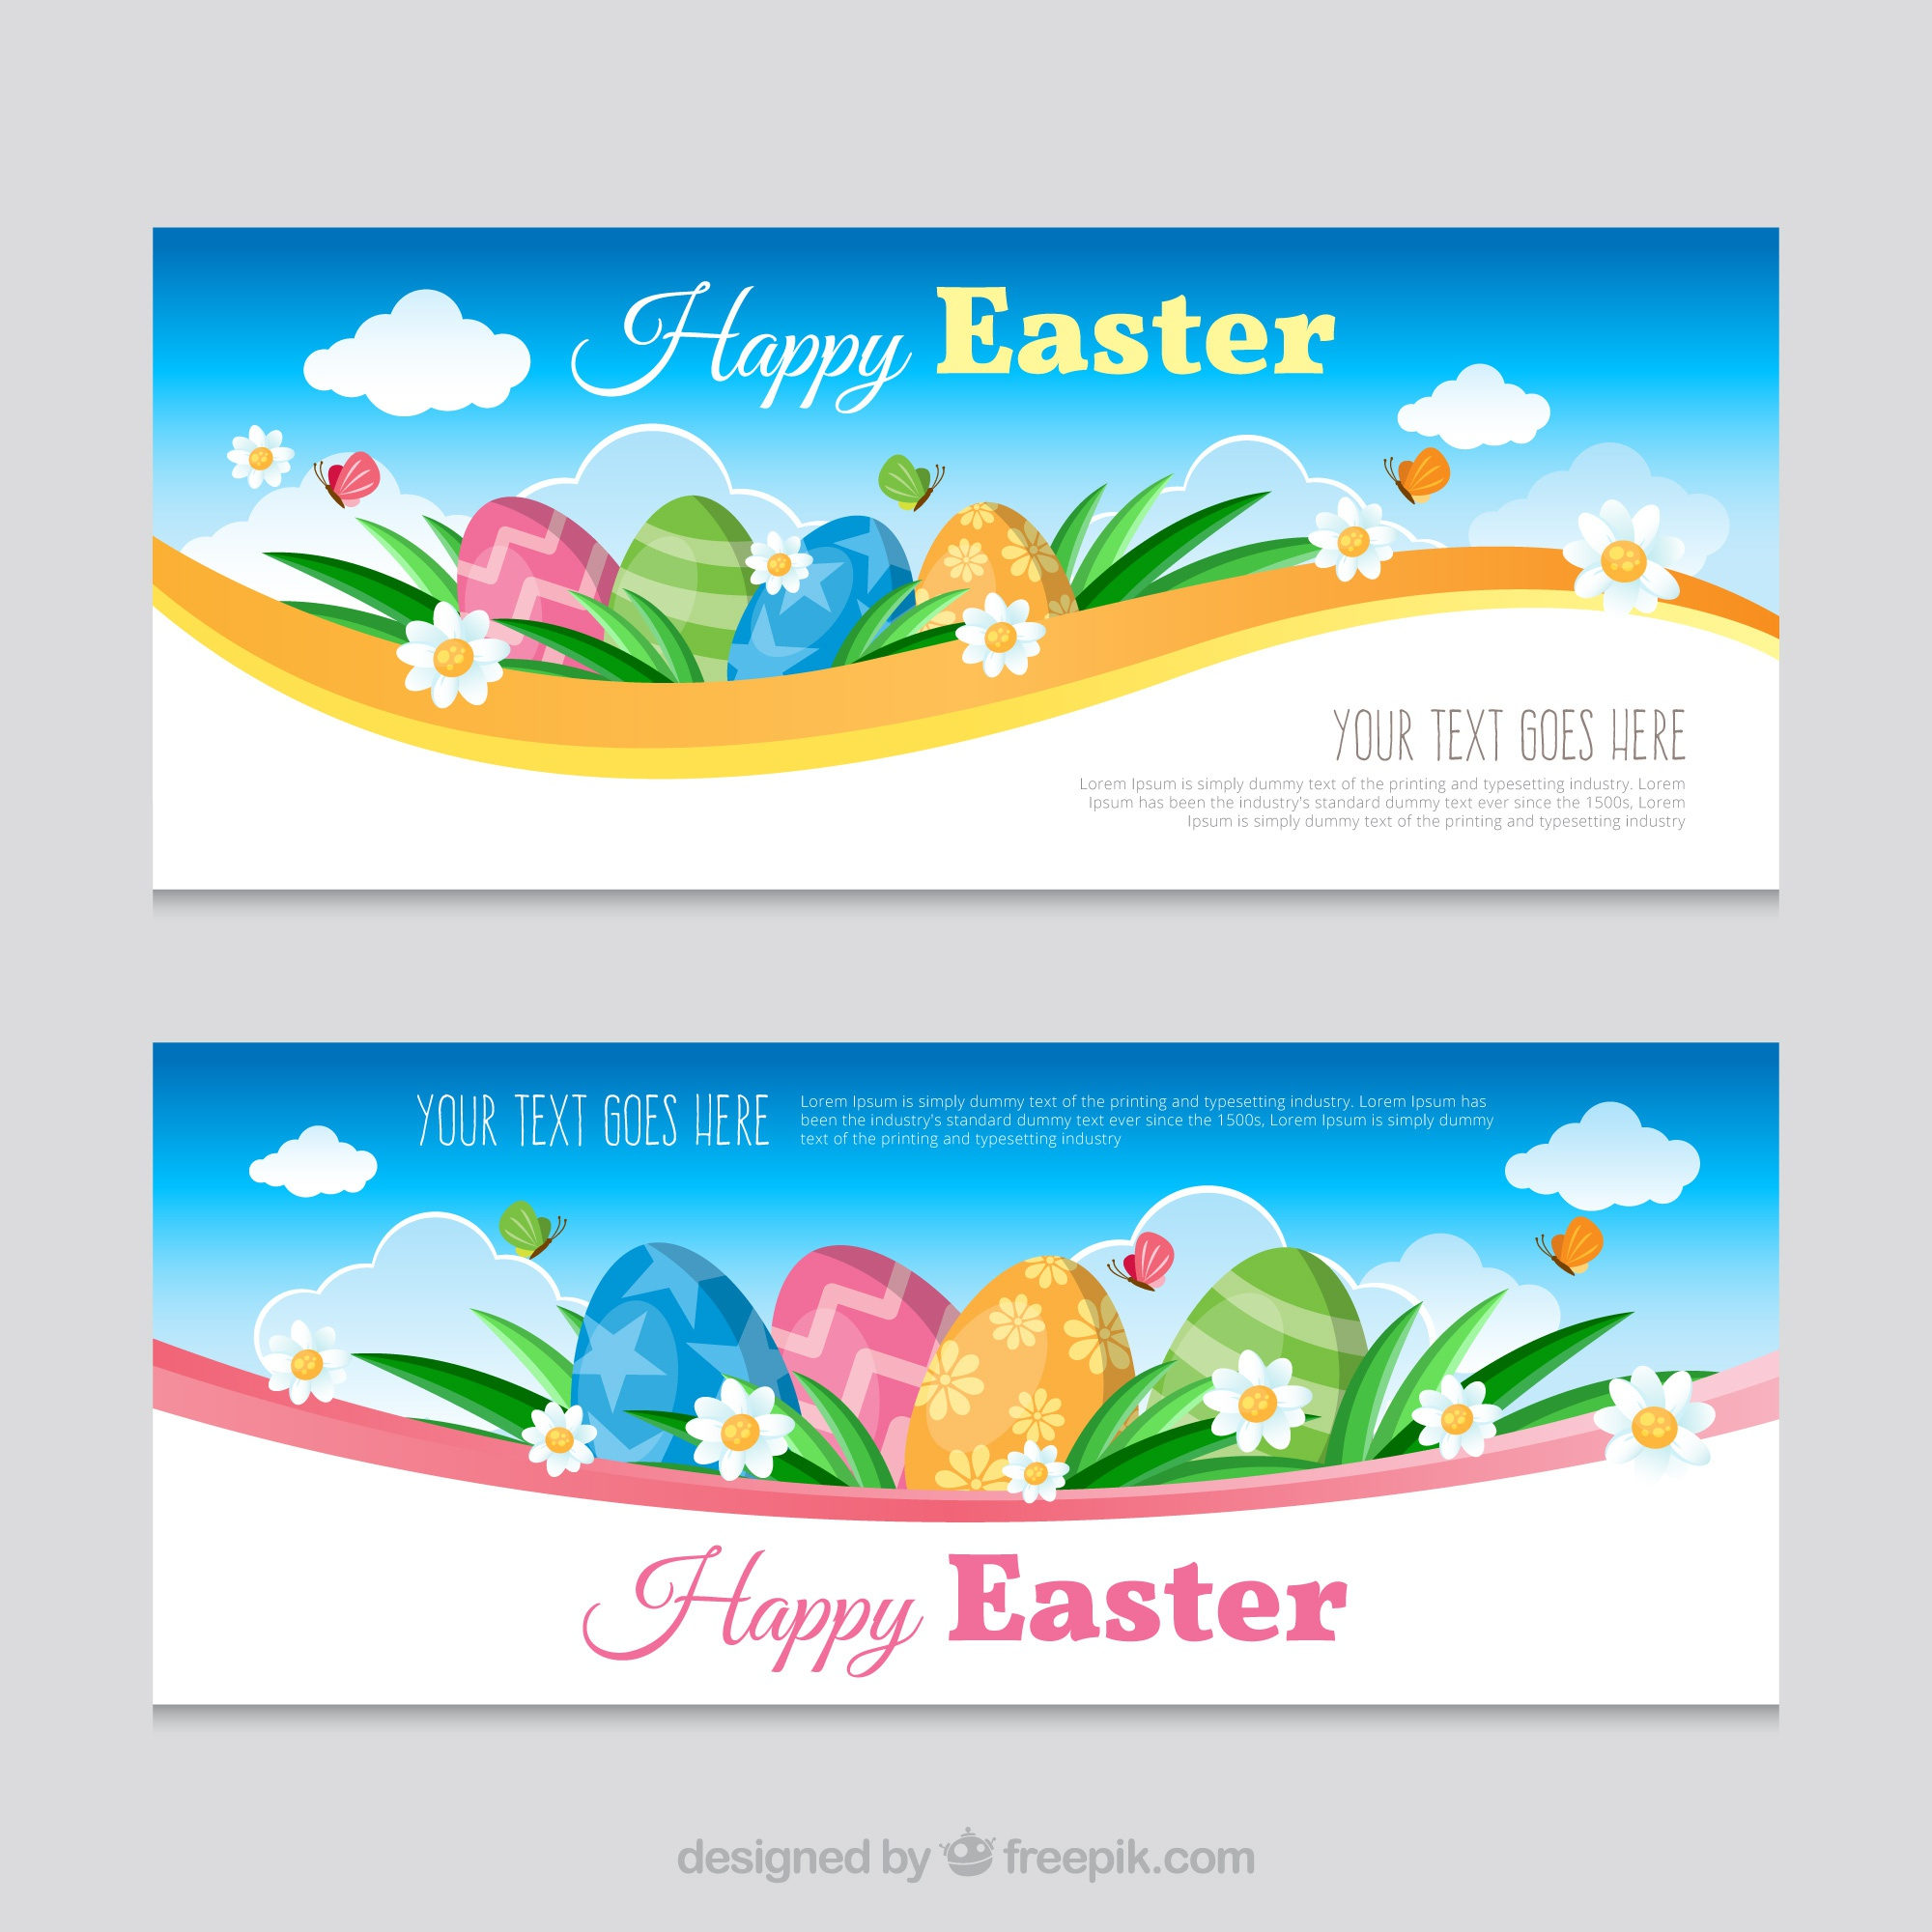 Realistic easter banners with decorative eggs